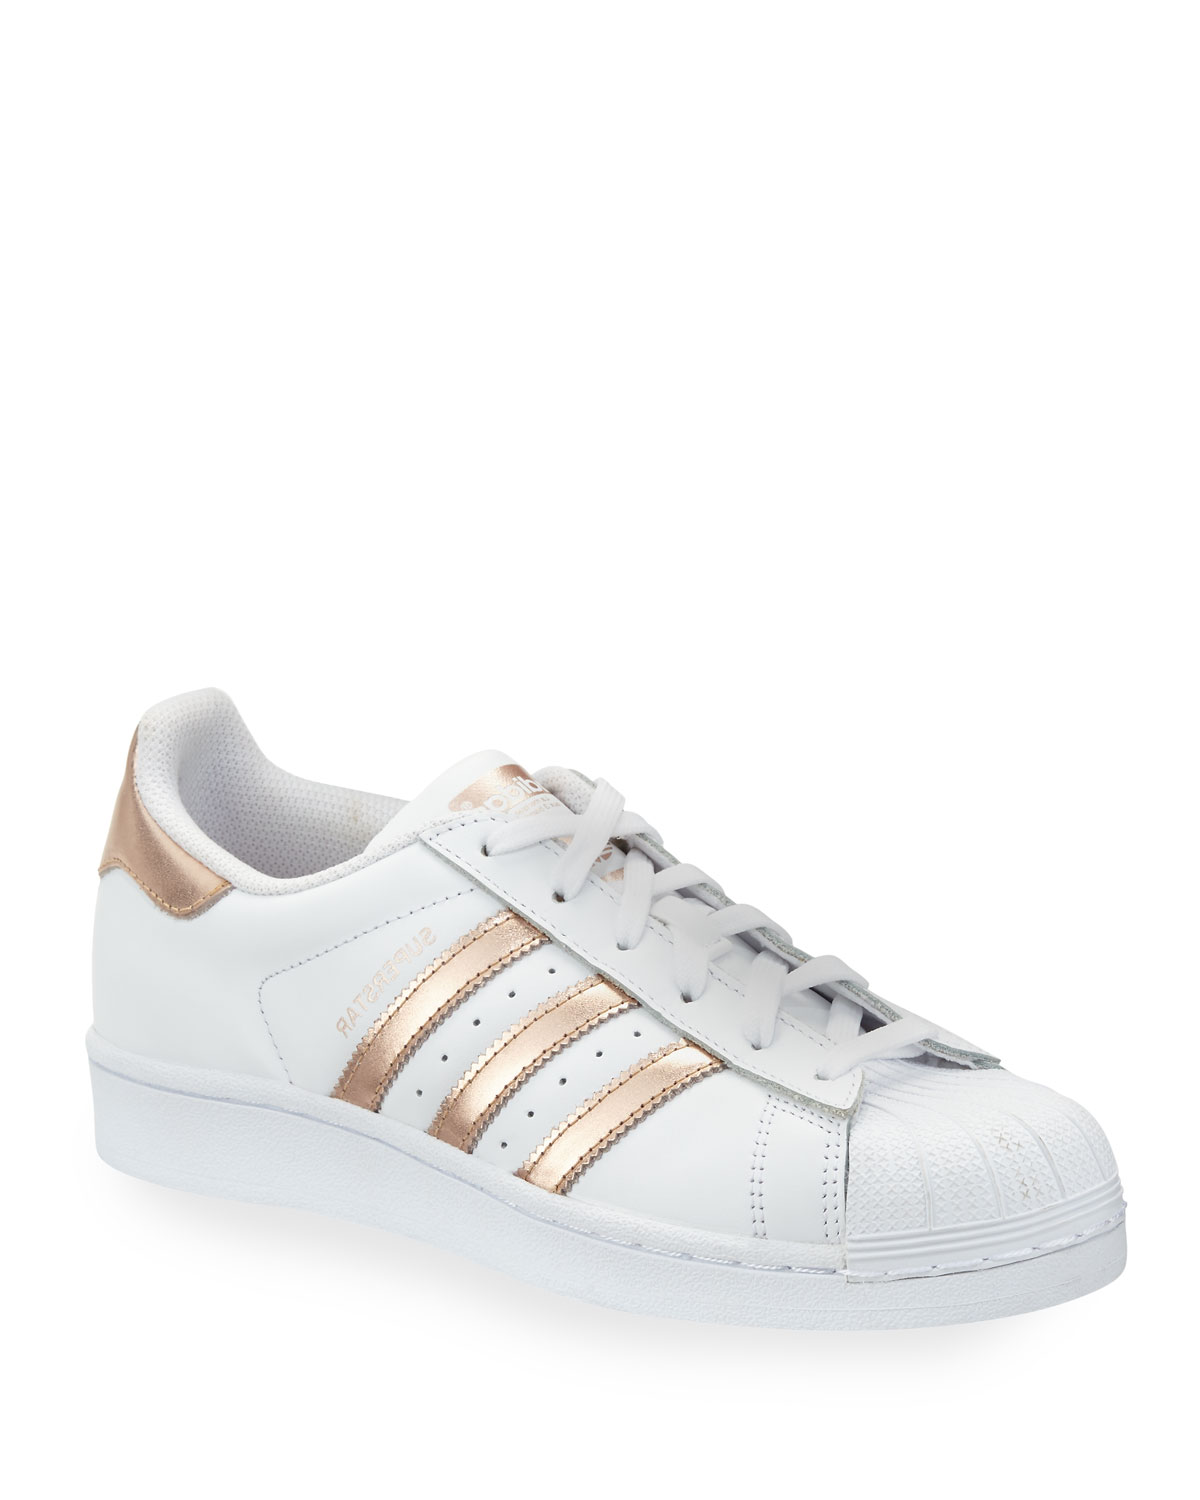 26699fd32e2f Adidas Superstar Original Fashion Sneakers